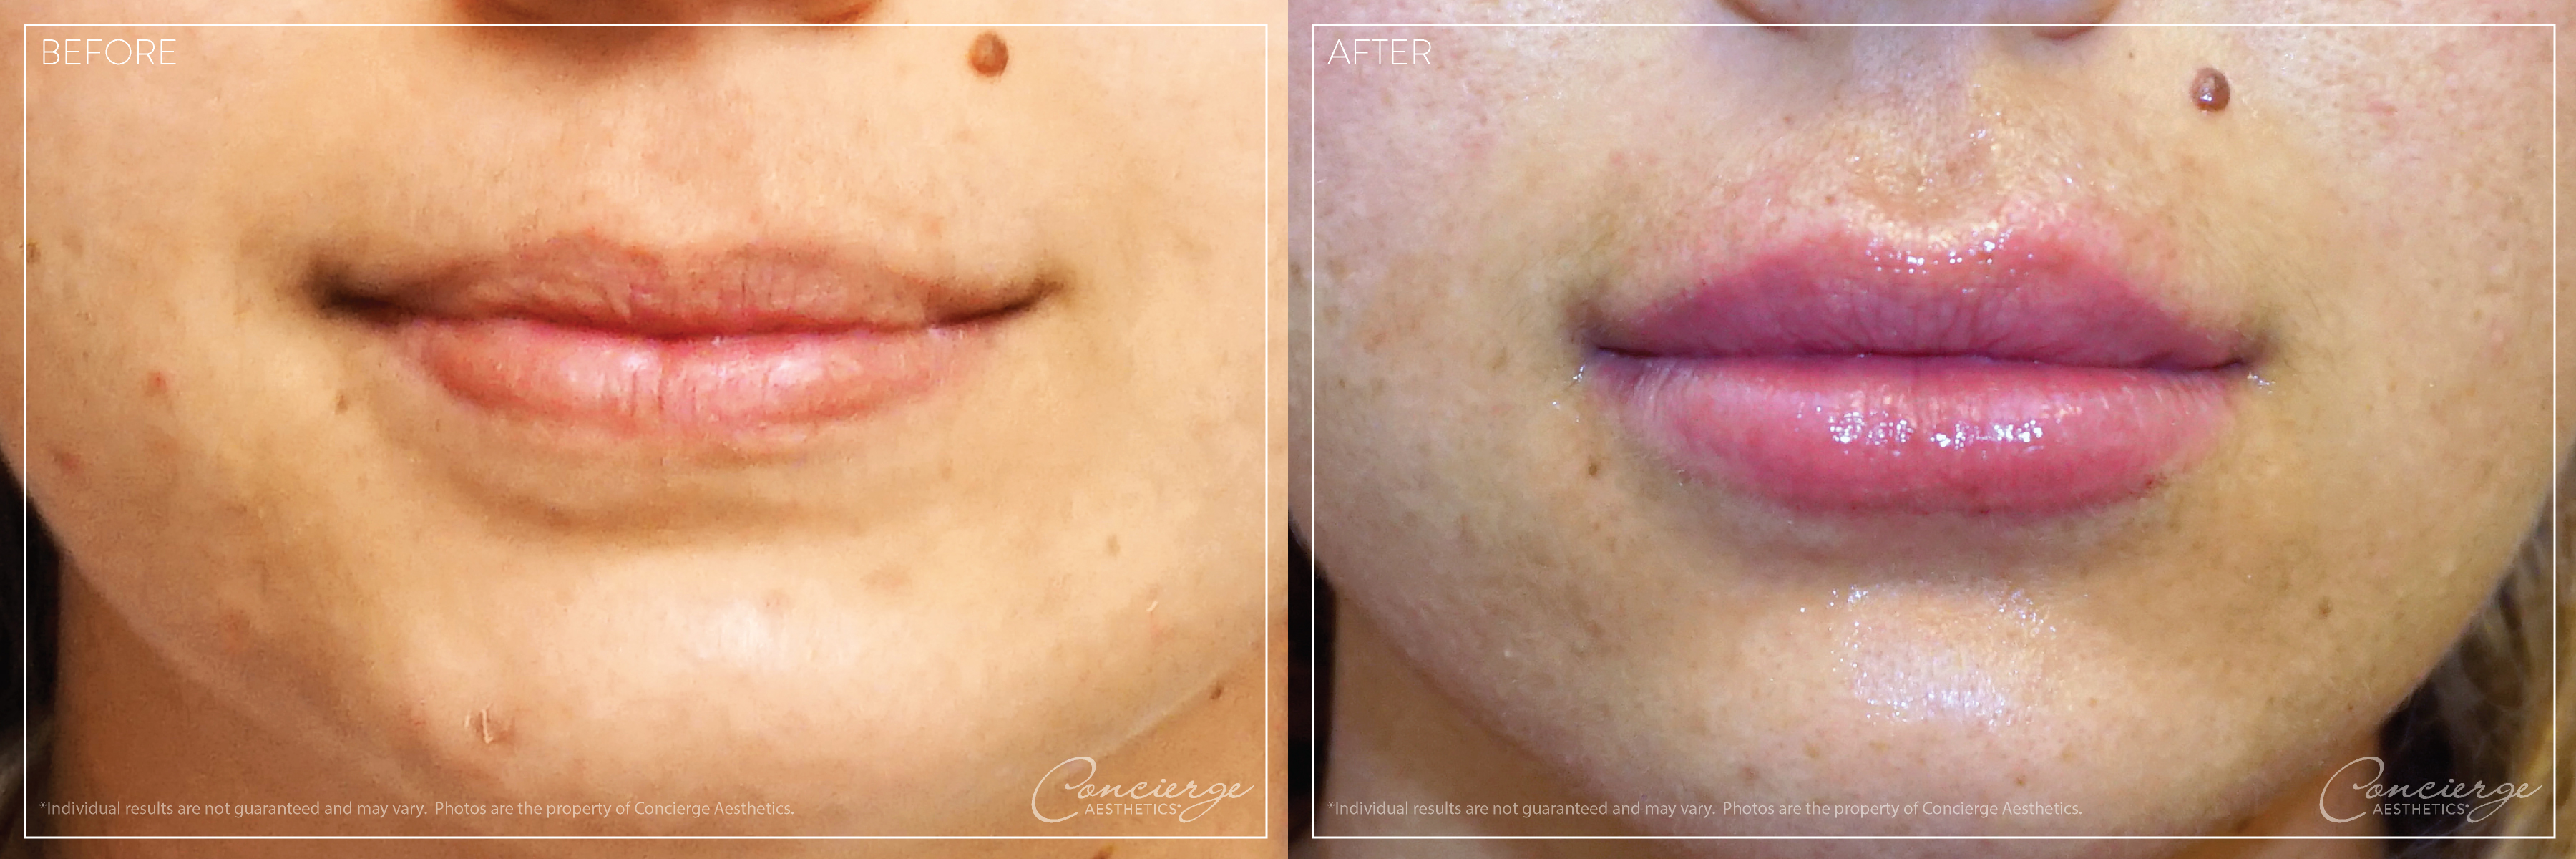 Before and After: Juvederm Volbella and Vollure - Lips | Concierge Aesthetics